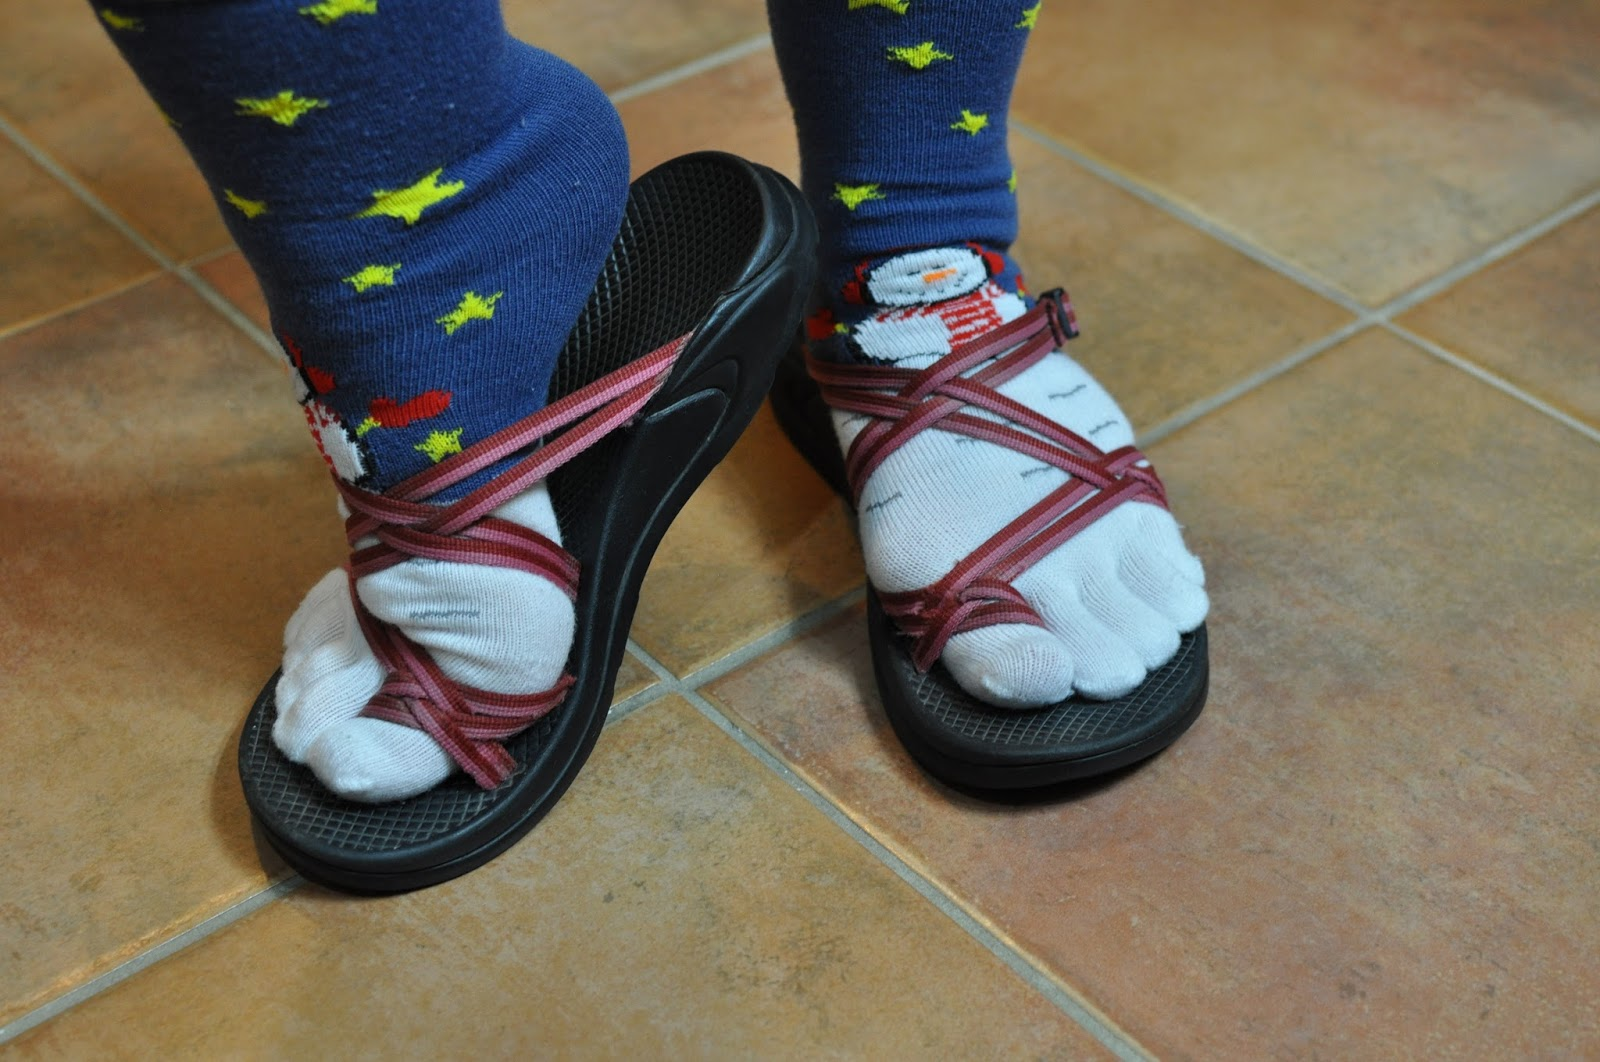 f01b21769b258d Girls rock socks and sandals june JPG 1600x1062 Shoes socks with chacos